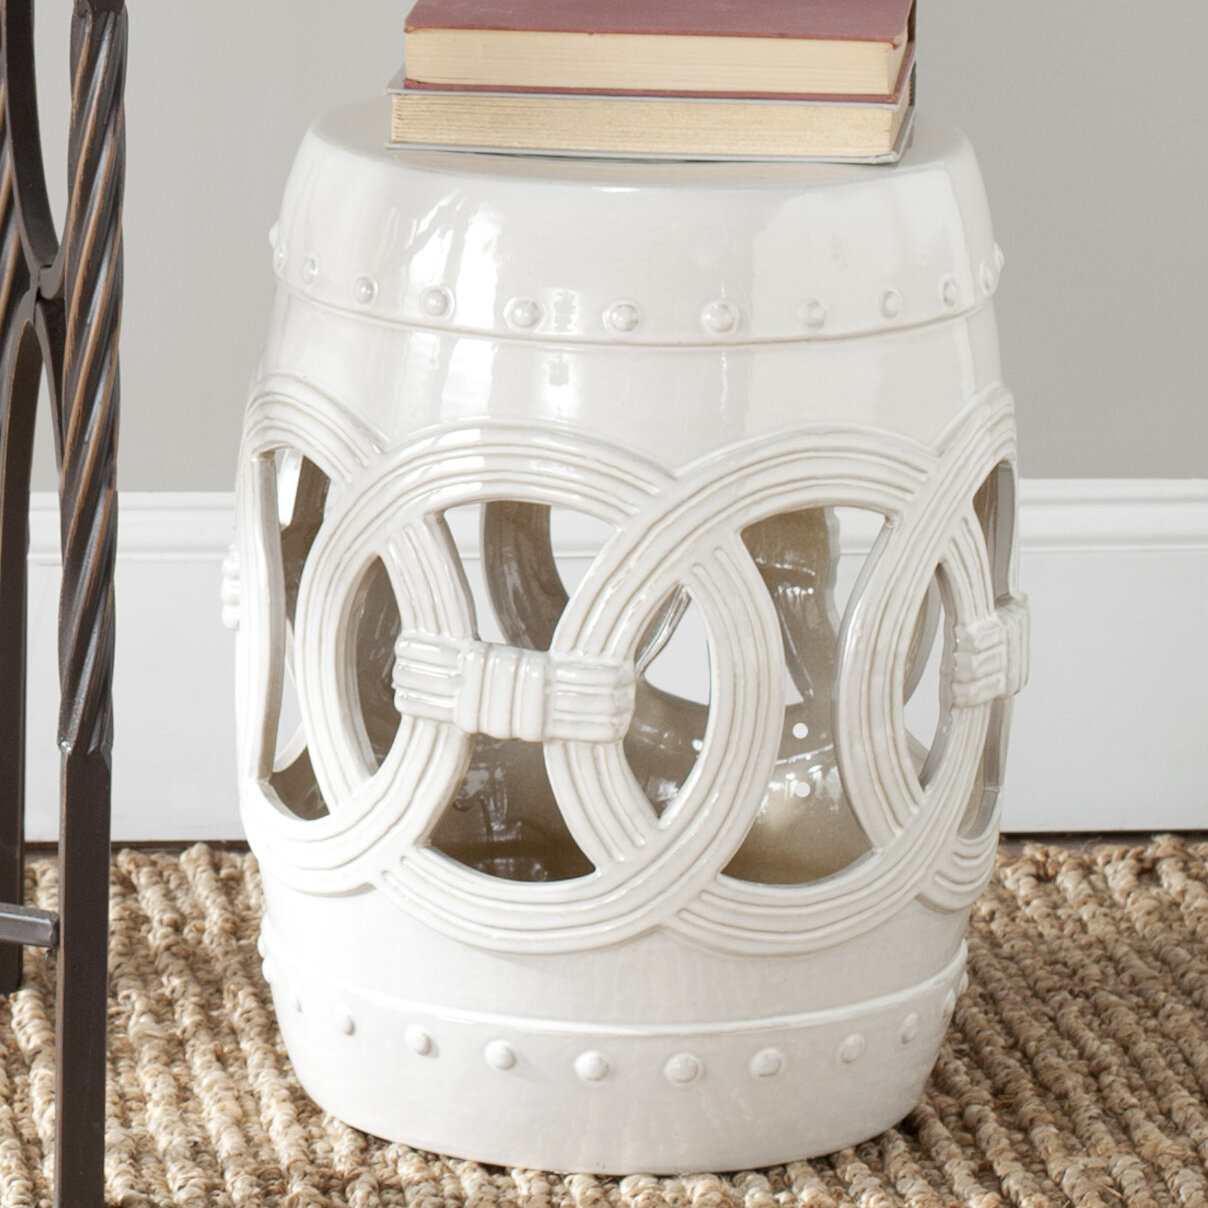 Blue & White Garden Stools You'Ll Love In 2020 | Wayfair Pertaining To Arista Ceramic Garden Stools (View 11 of 25)